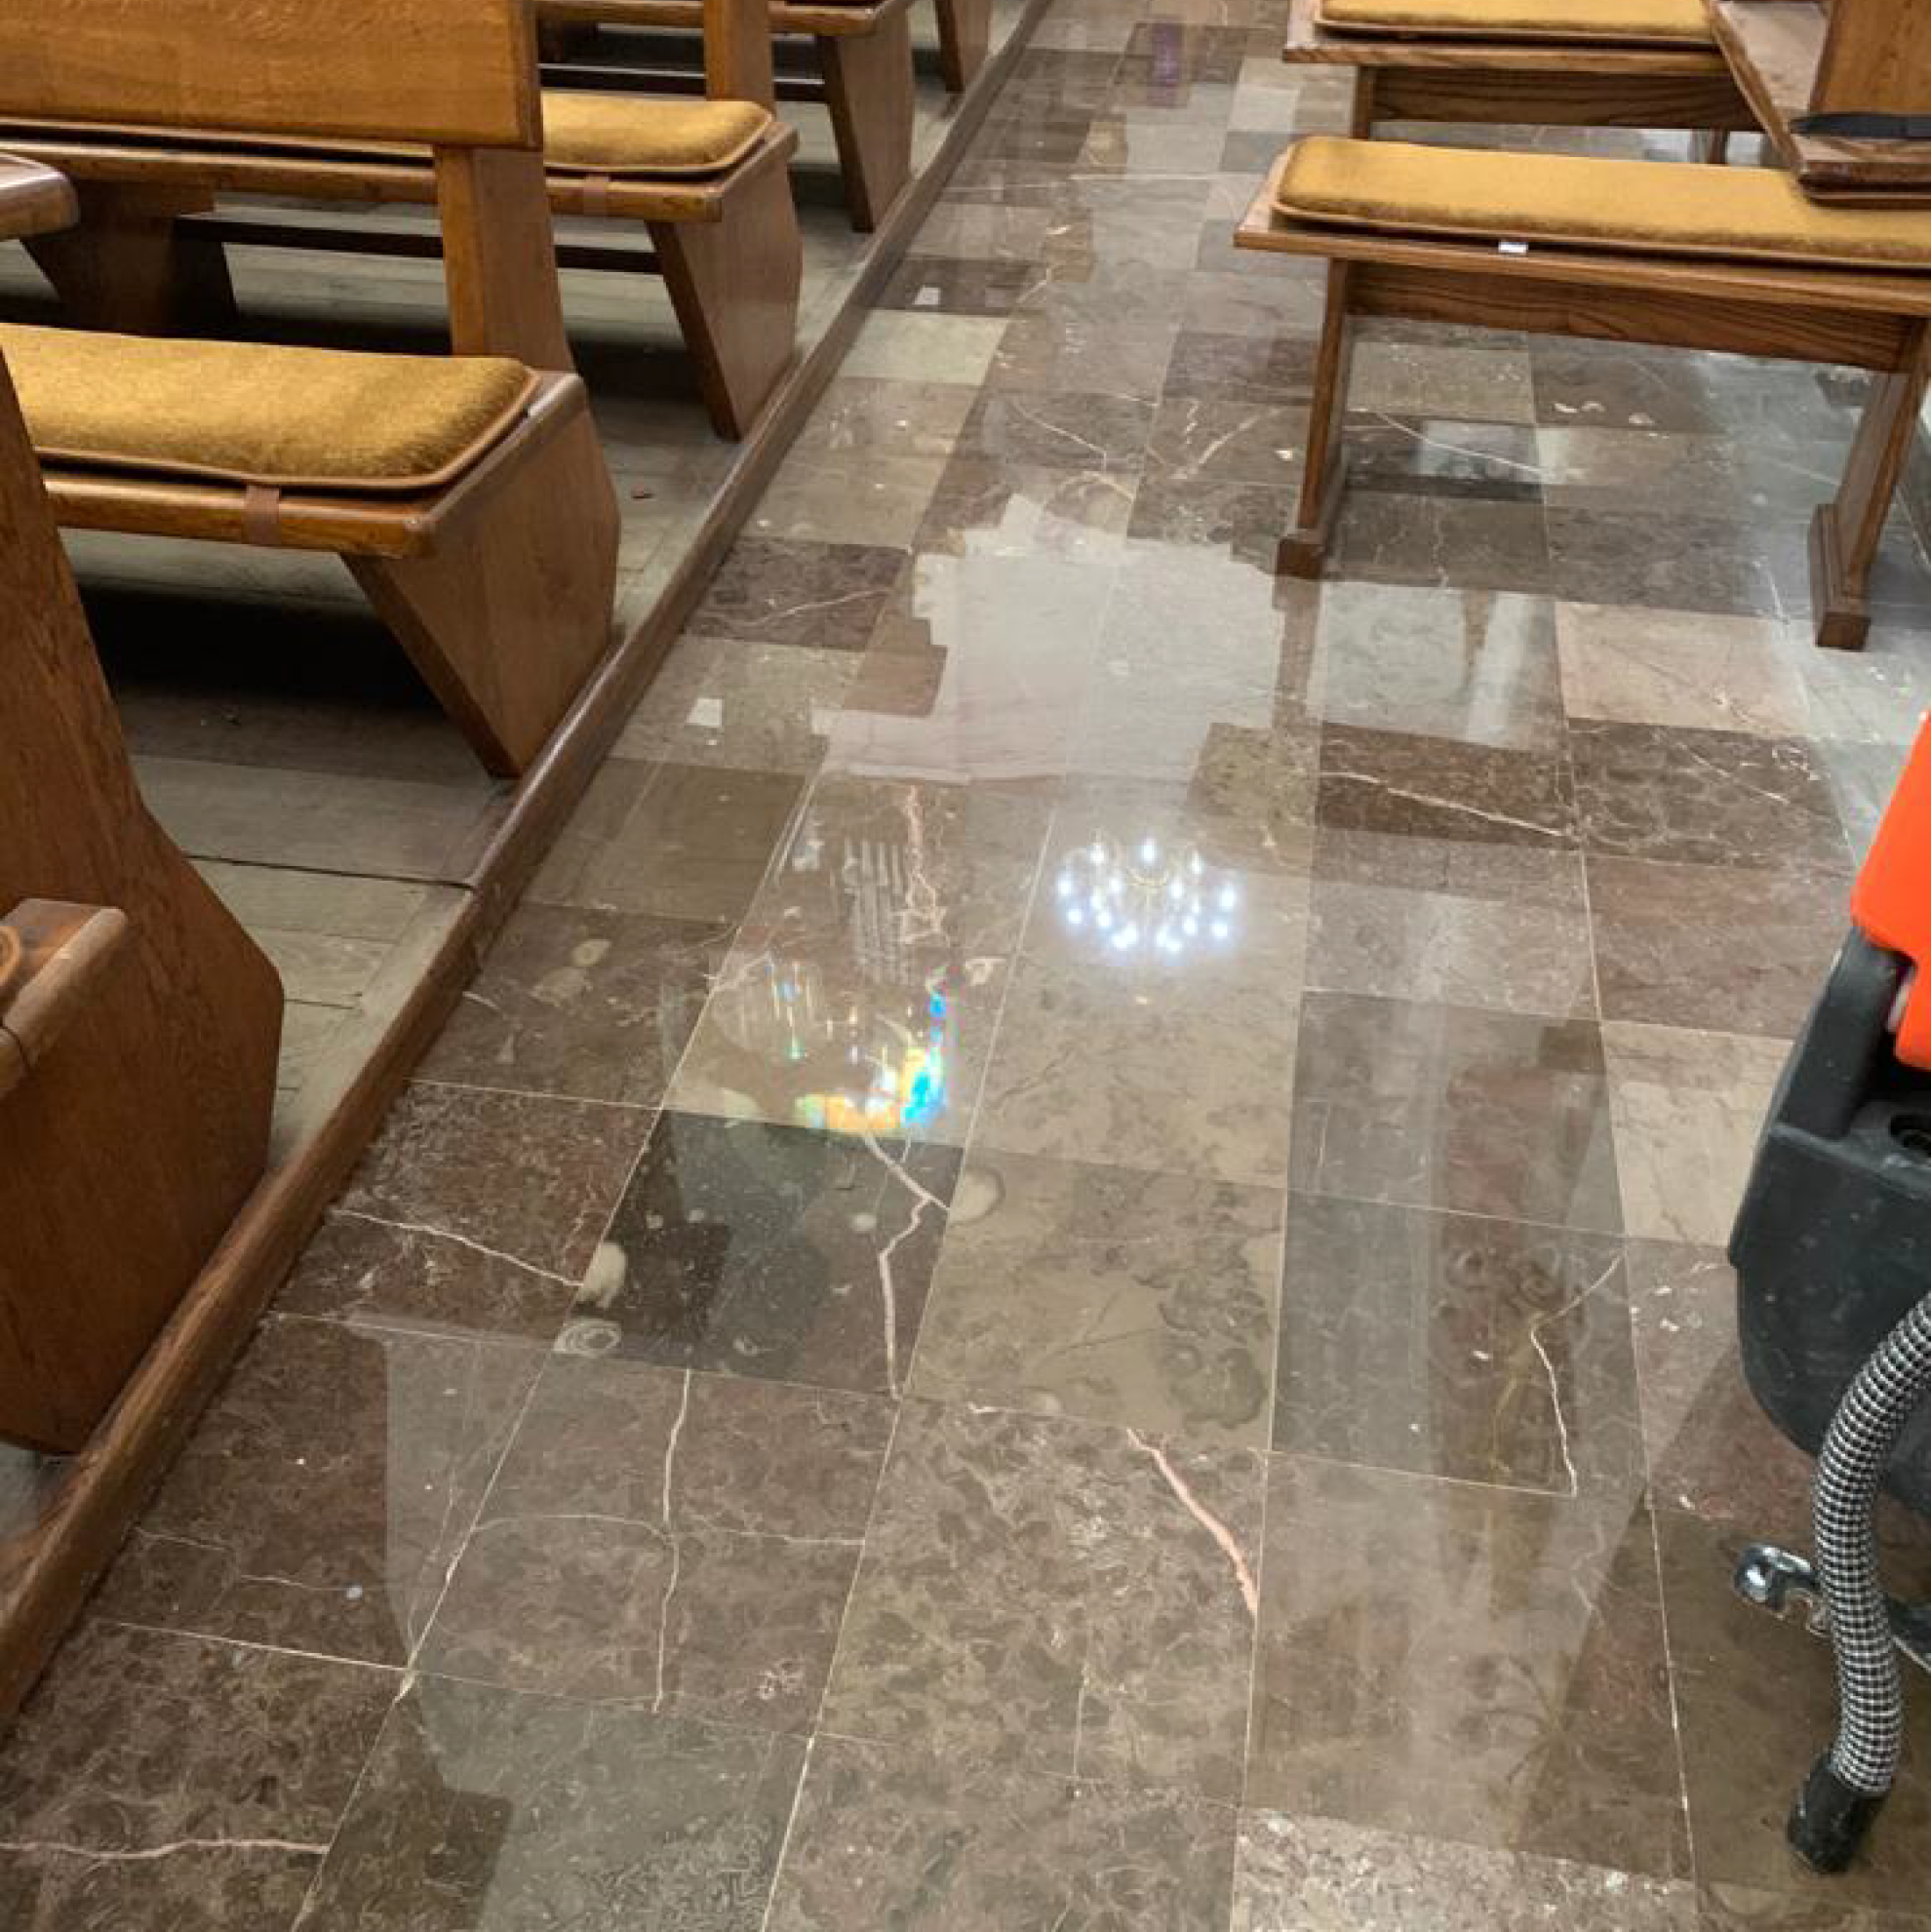 Sacred buildings / Renovation of the church flooring